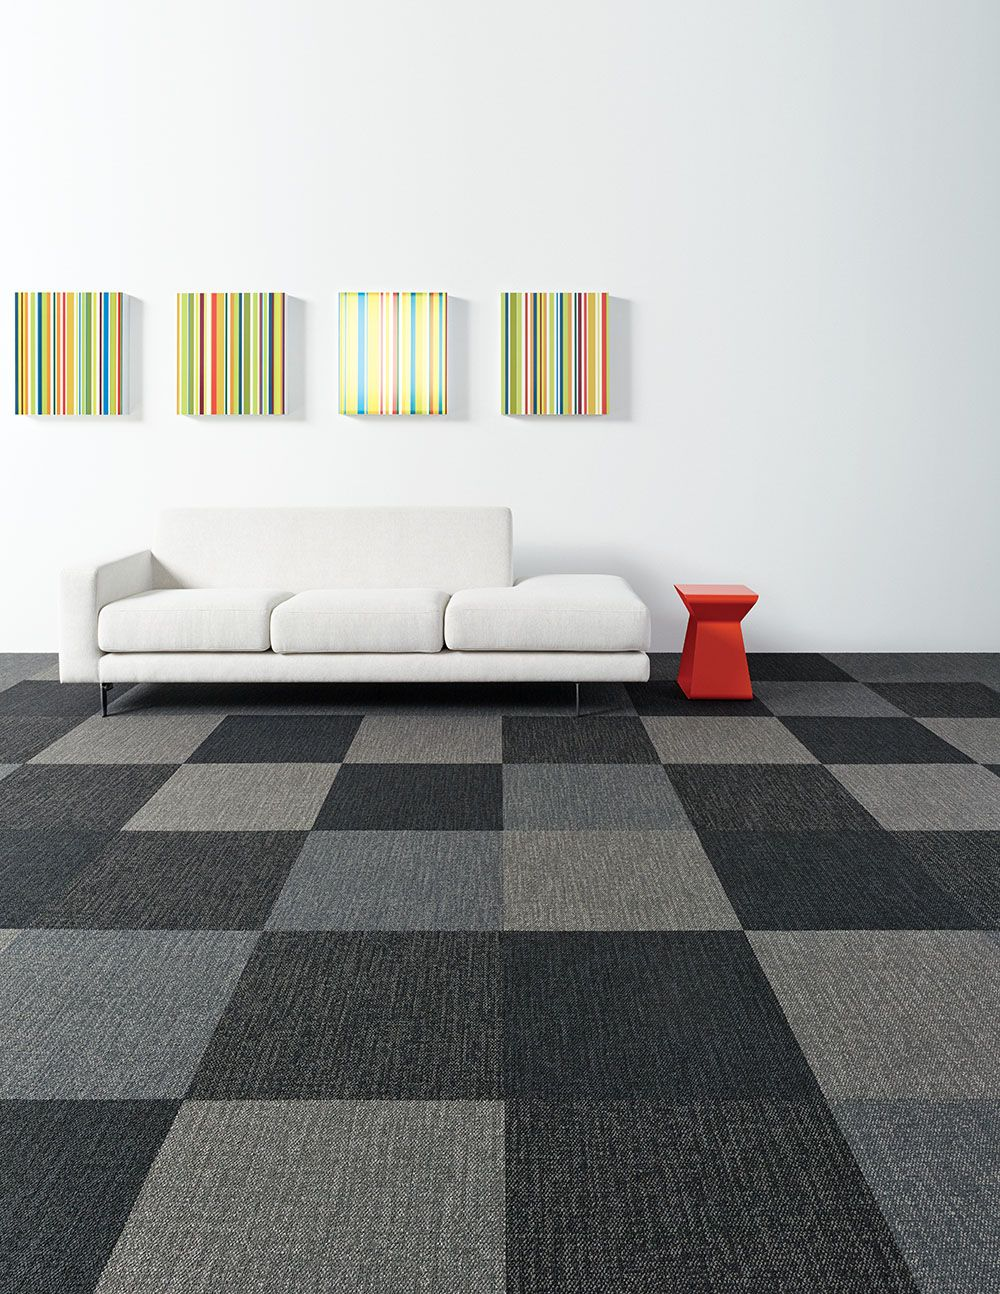 Color Frame Carpet Tile Simple And Tailored Near Solid Pattern Consisting Of Random Linear Lines 23 91 Cm Size Available In 36 Colours